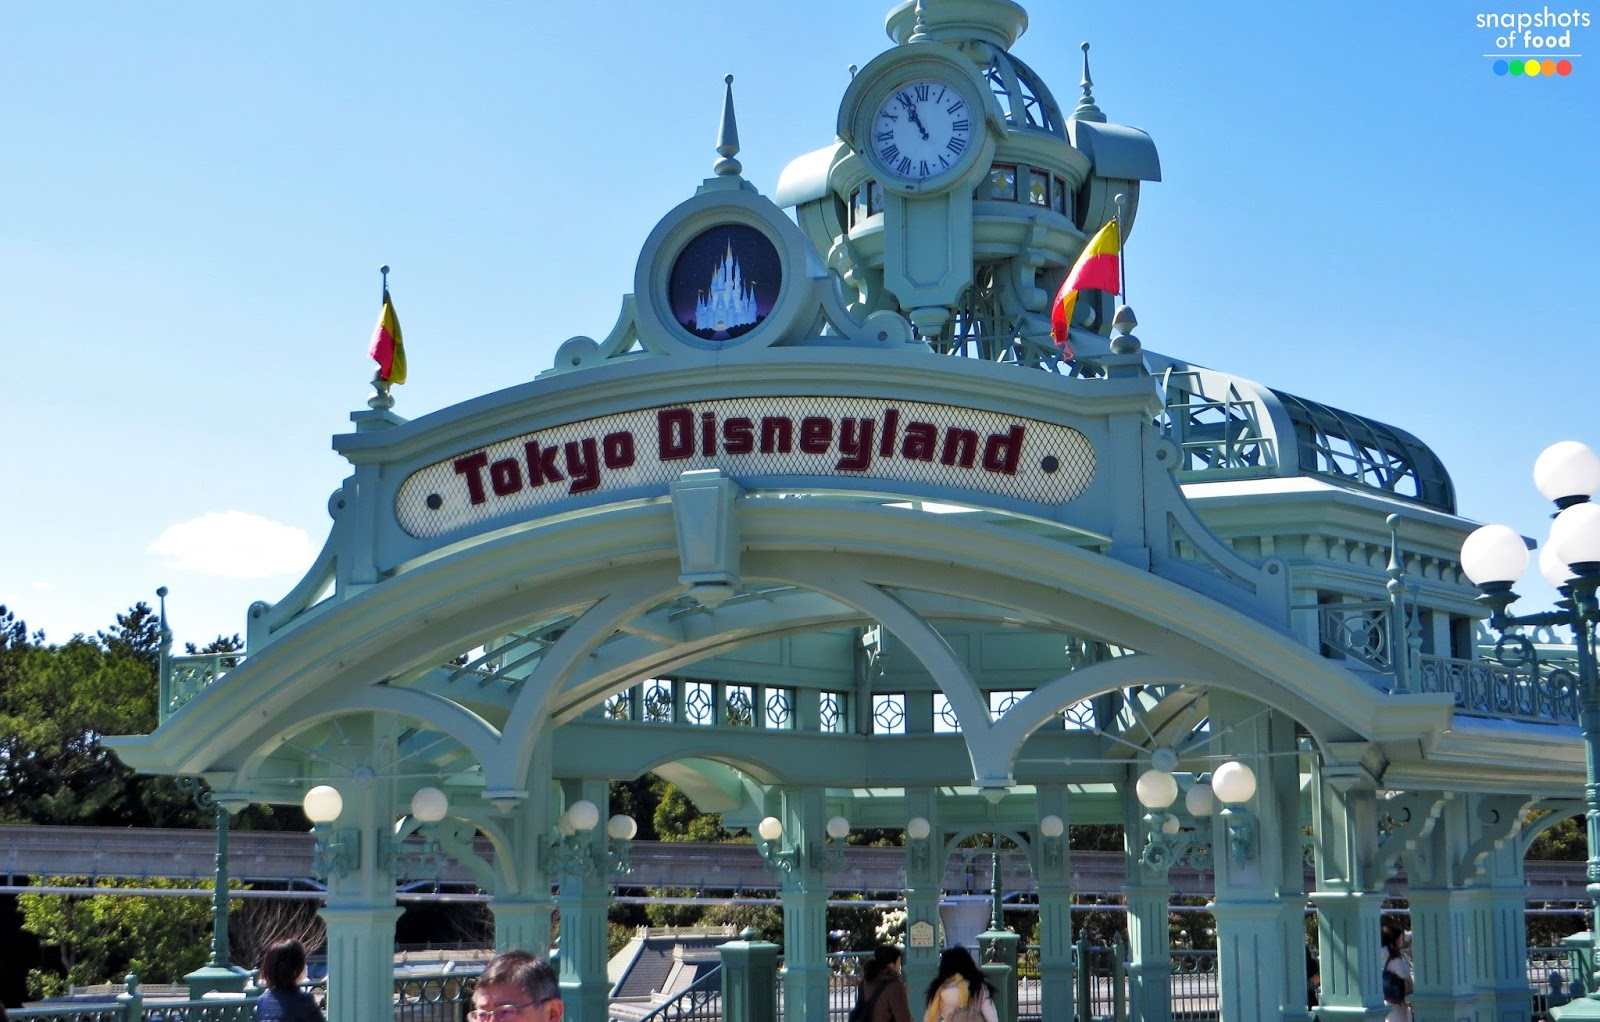 Travel post: Our Japan Trip - Day 1 (Tokyo Disneyland ...